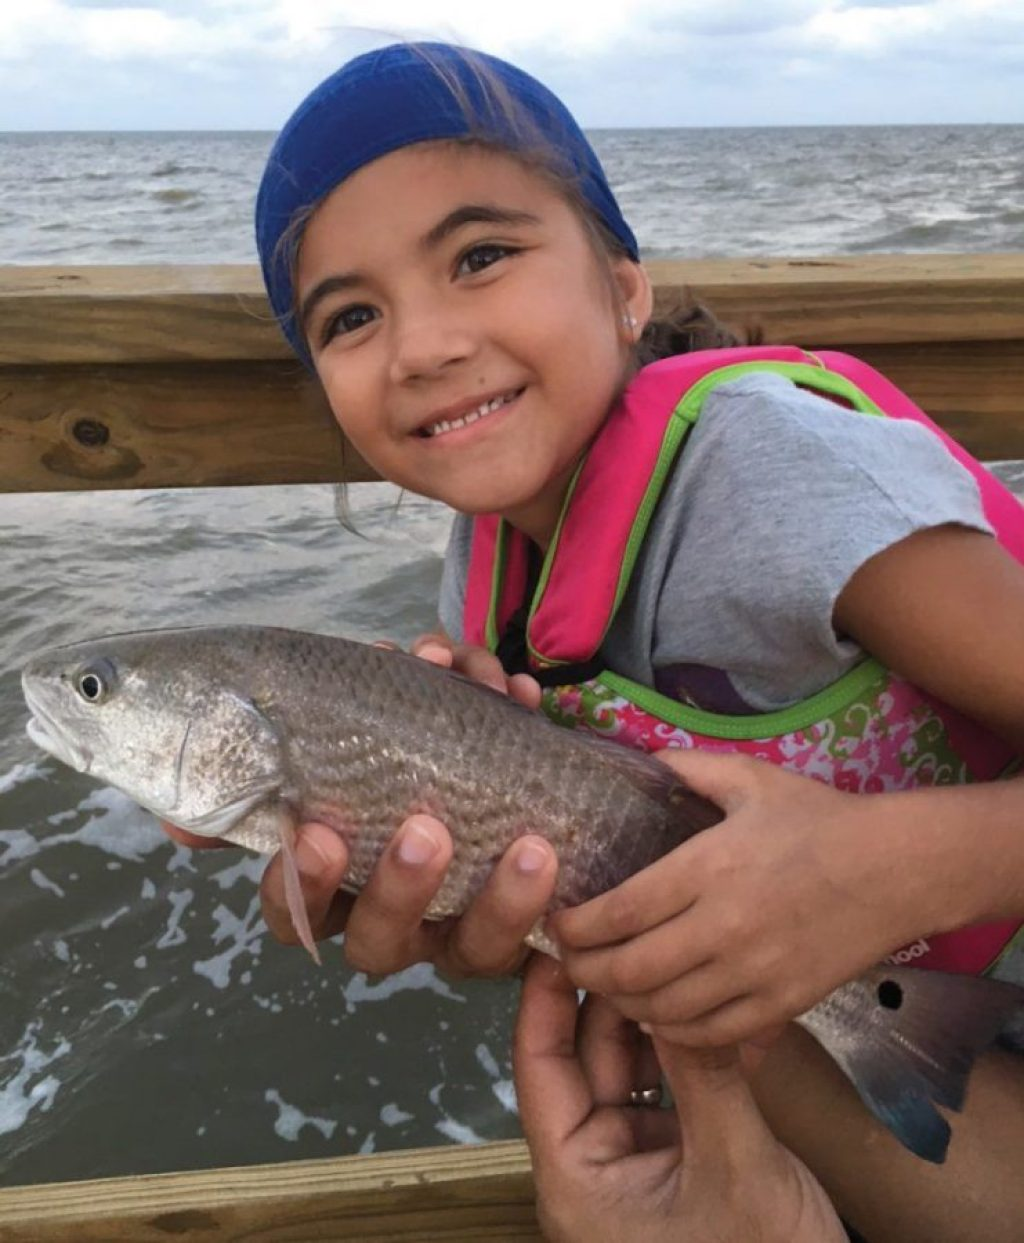 Seven-year-old Abryanna Rivera of Timberwood Park caught this 16-inch red on live shrimp while fishing from a pier on Aransas Bay.